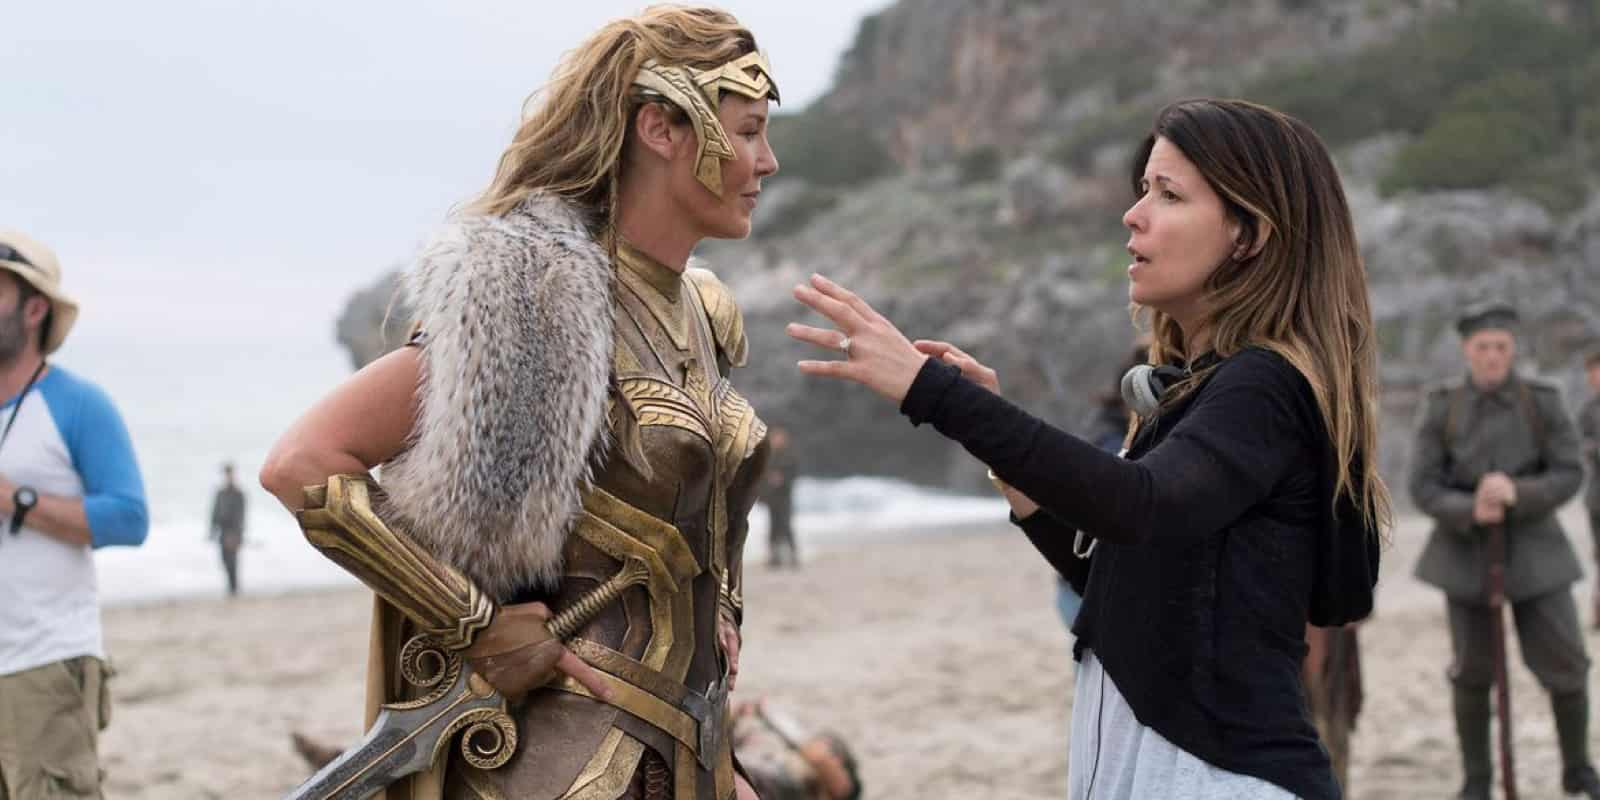 Best Female Directors - Patty Jenkins